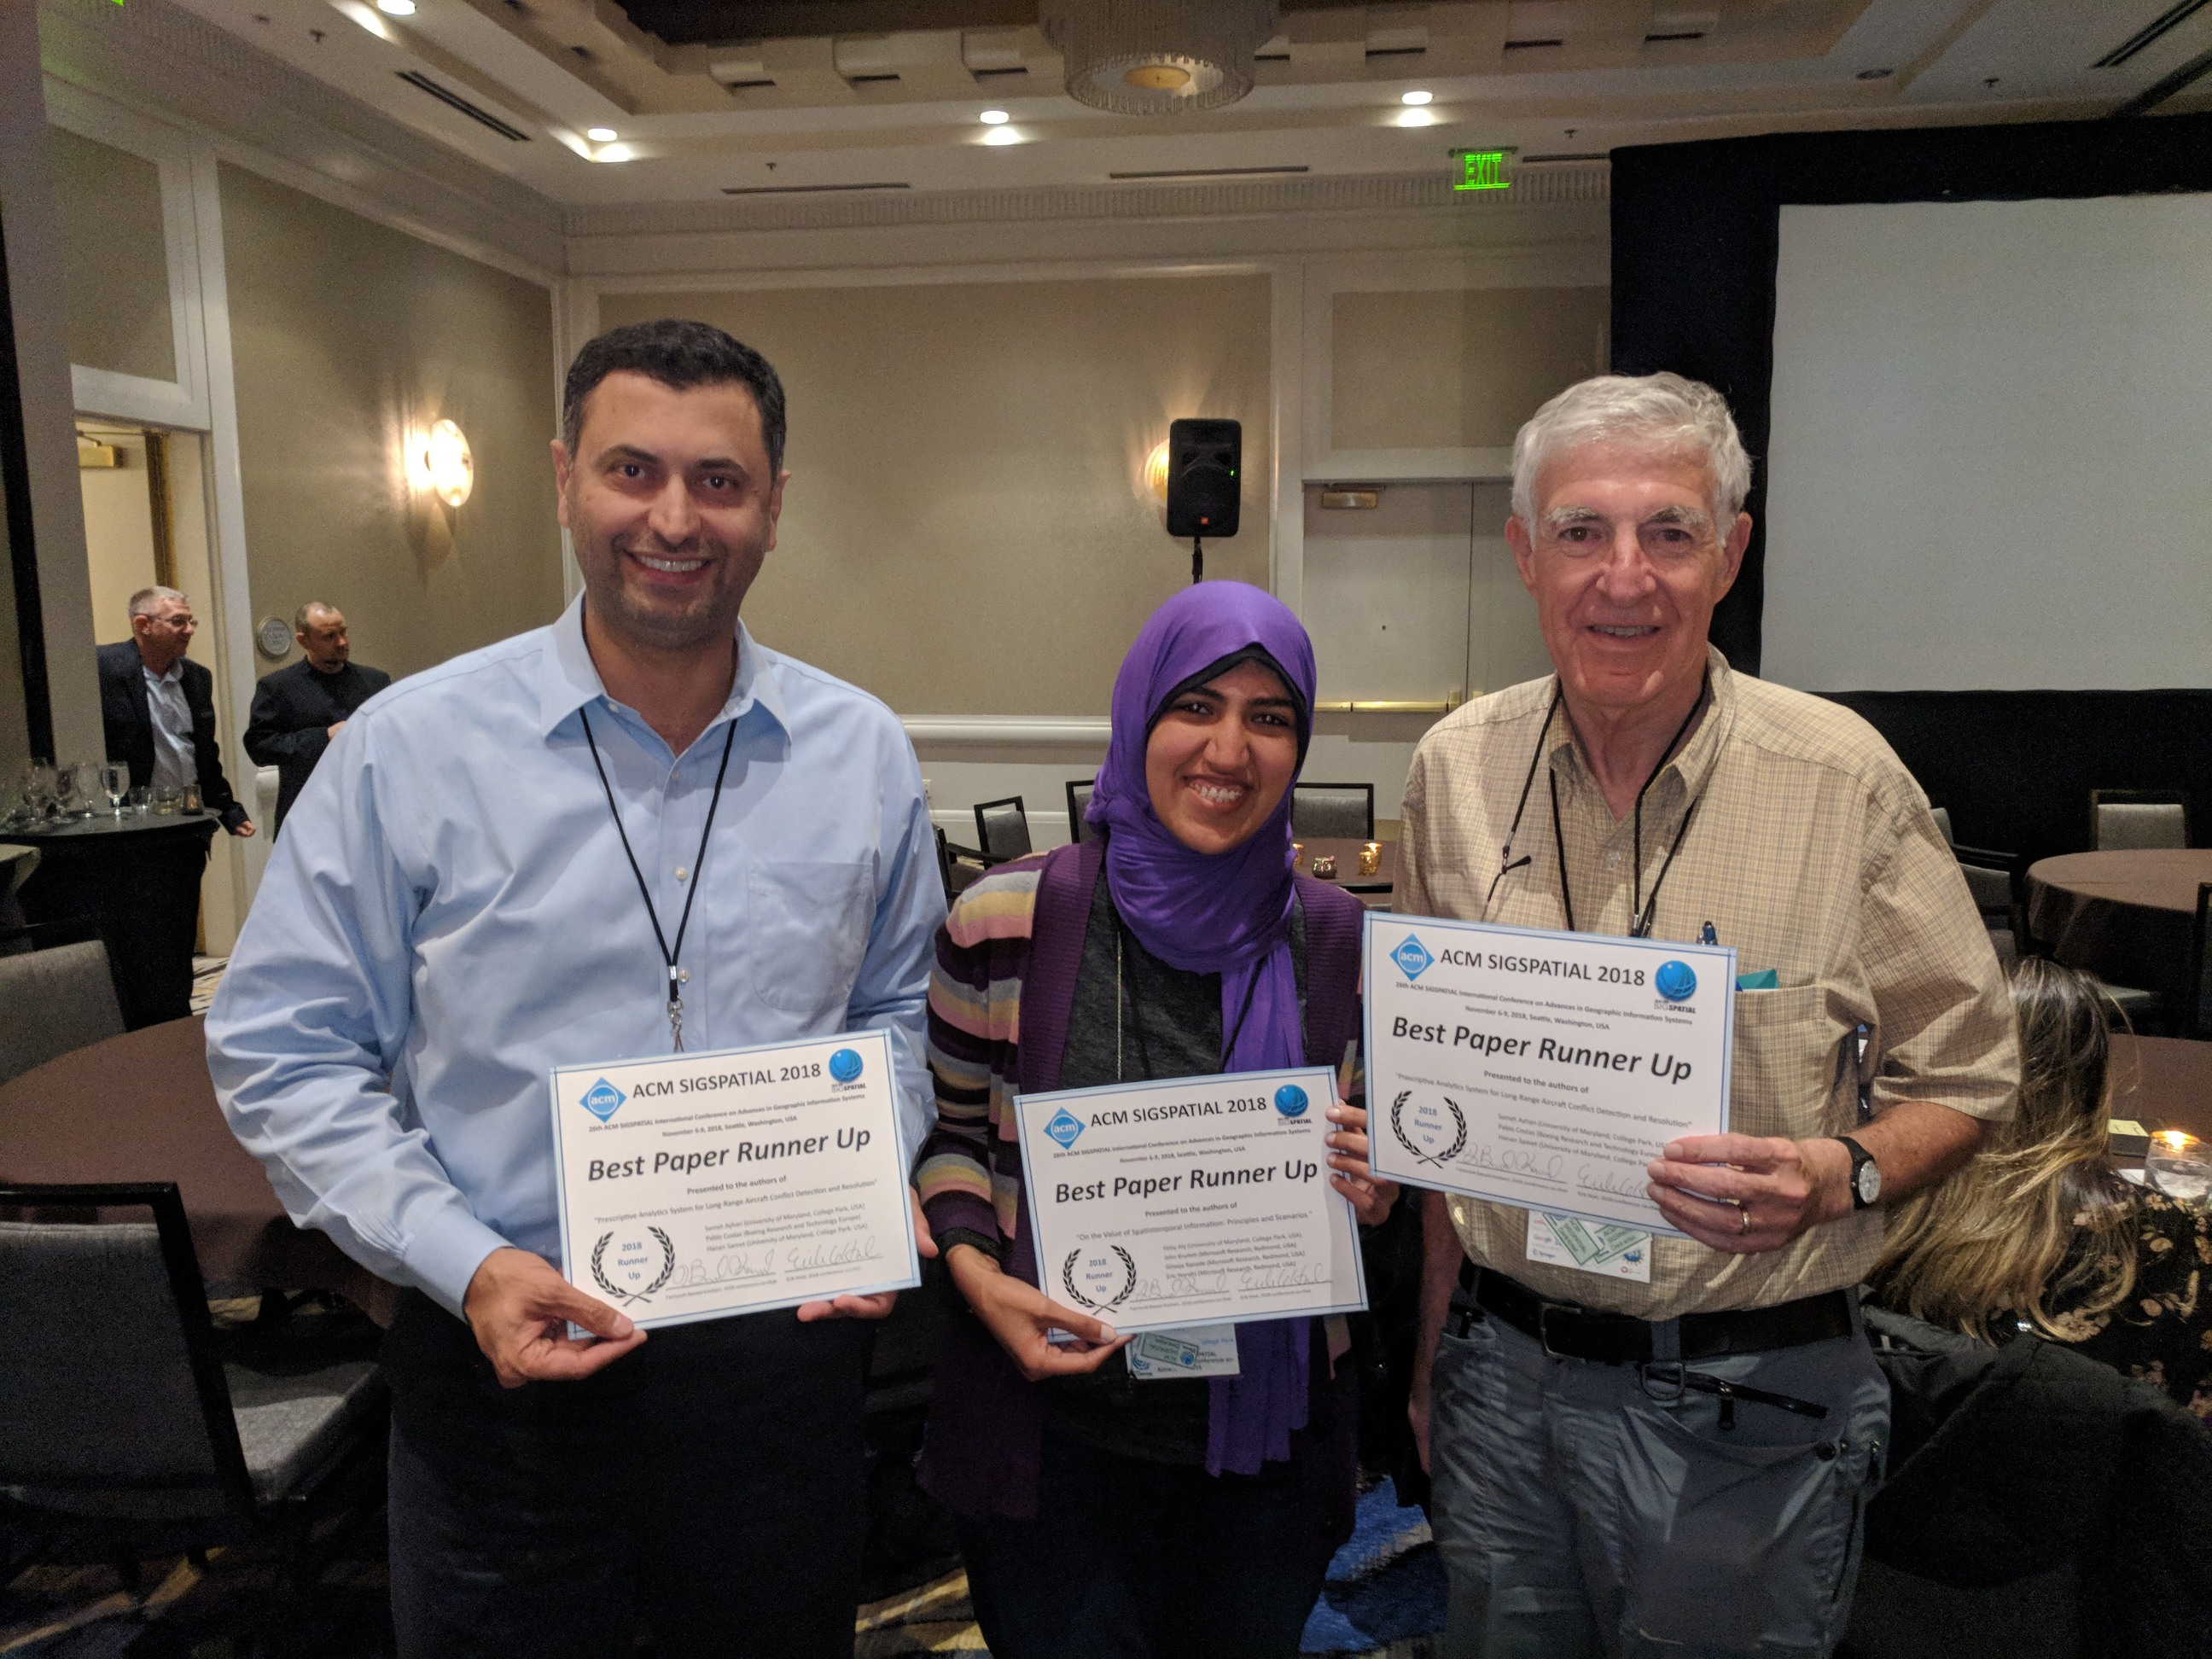 Descriptive image for Heba Aly, Samet Ayhan, and Hanan Samet Sweep Runners-up Categories in SIGSPATIAL Best Paper Competition